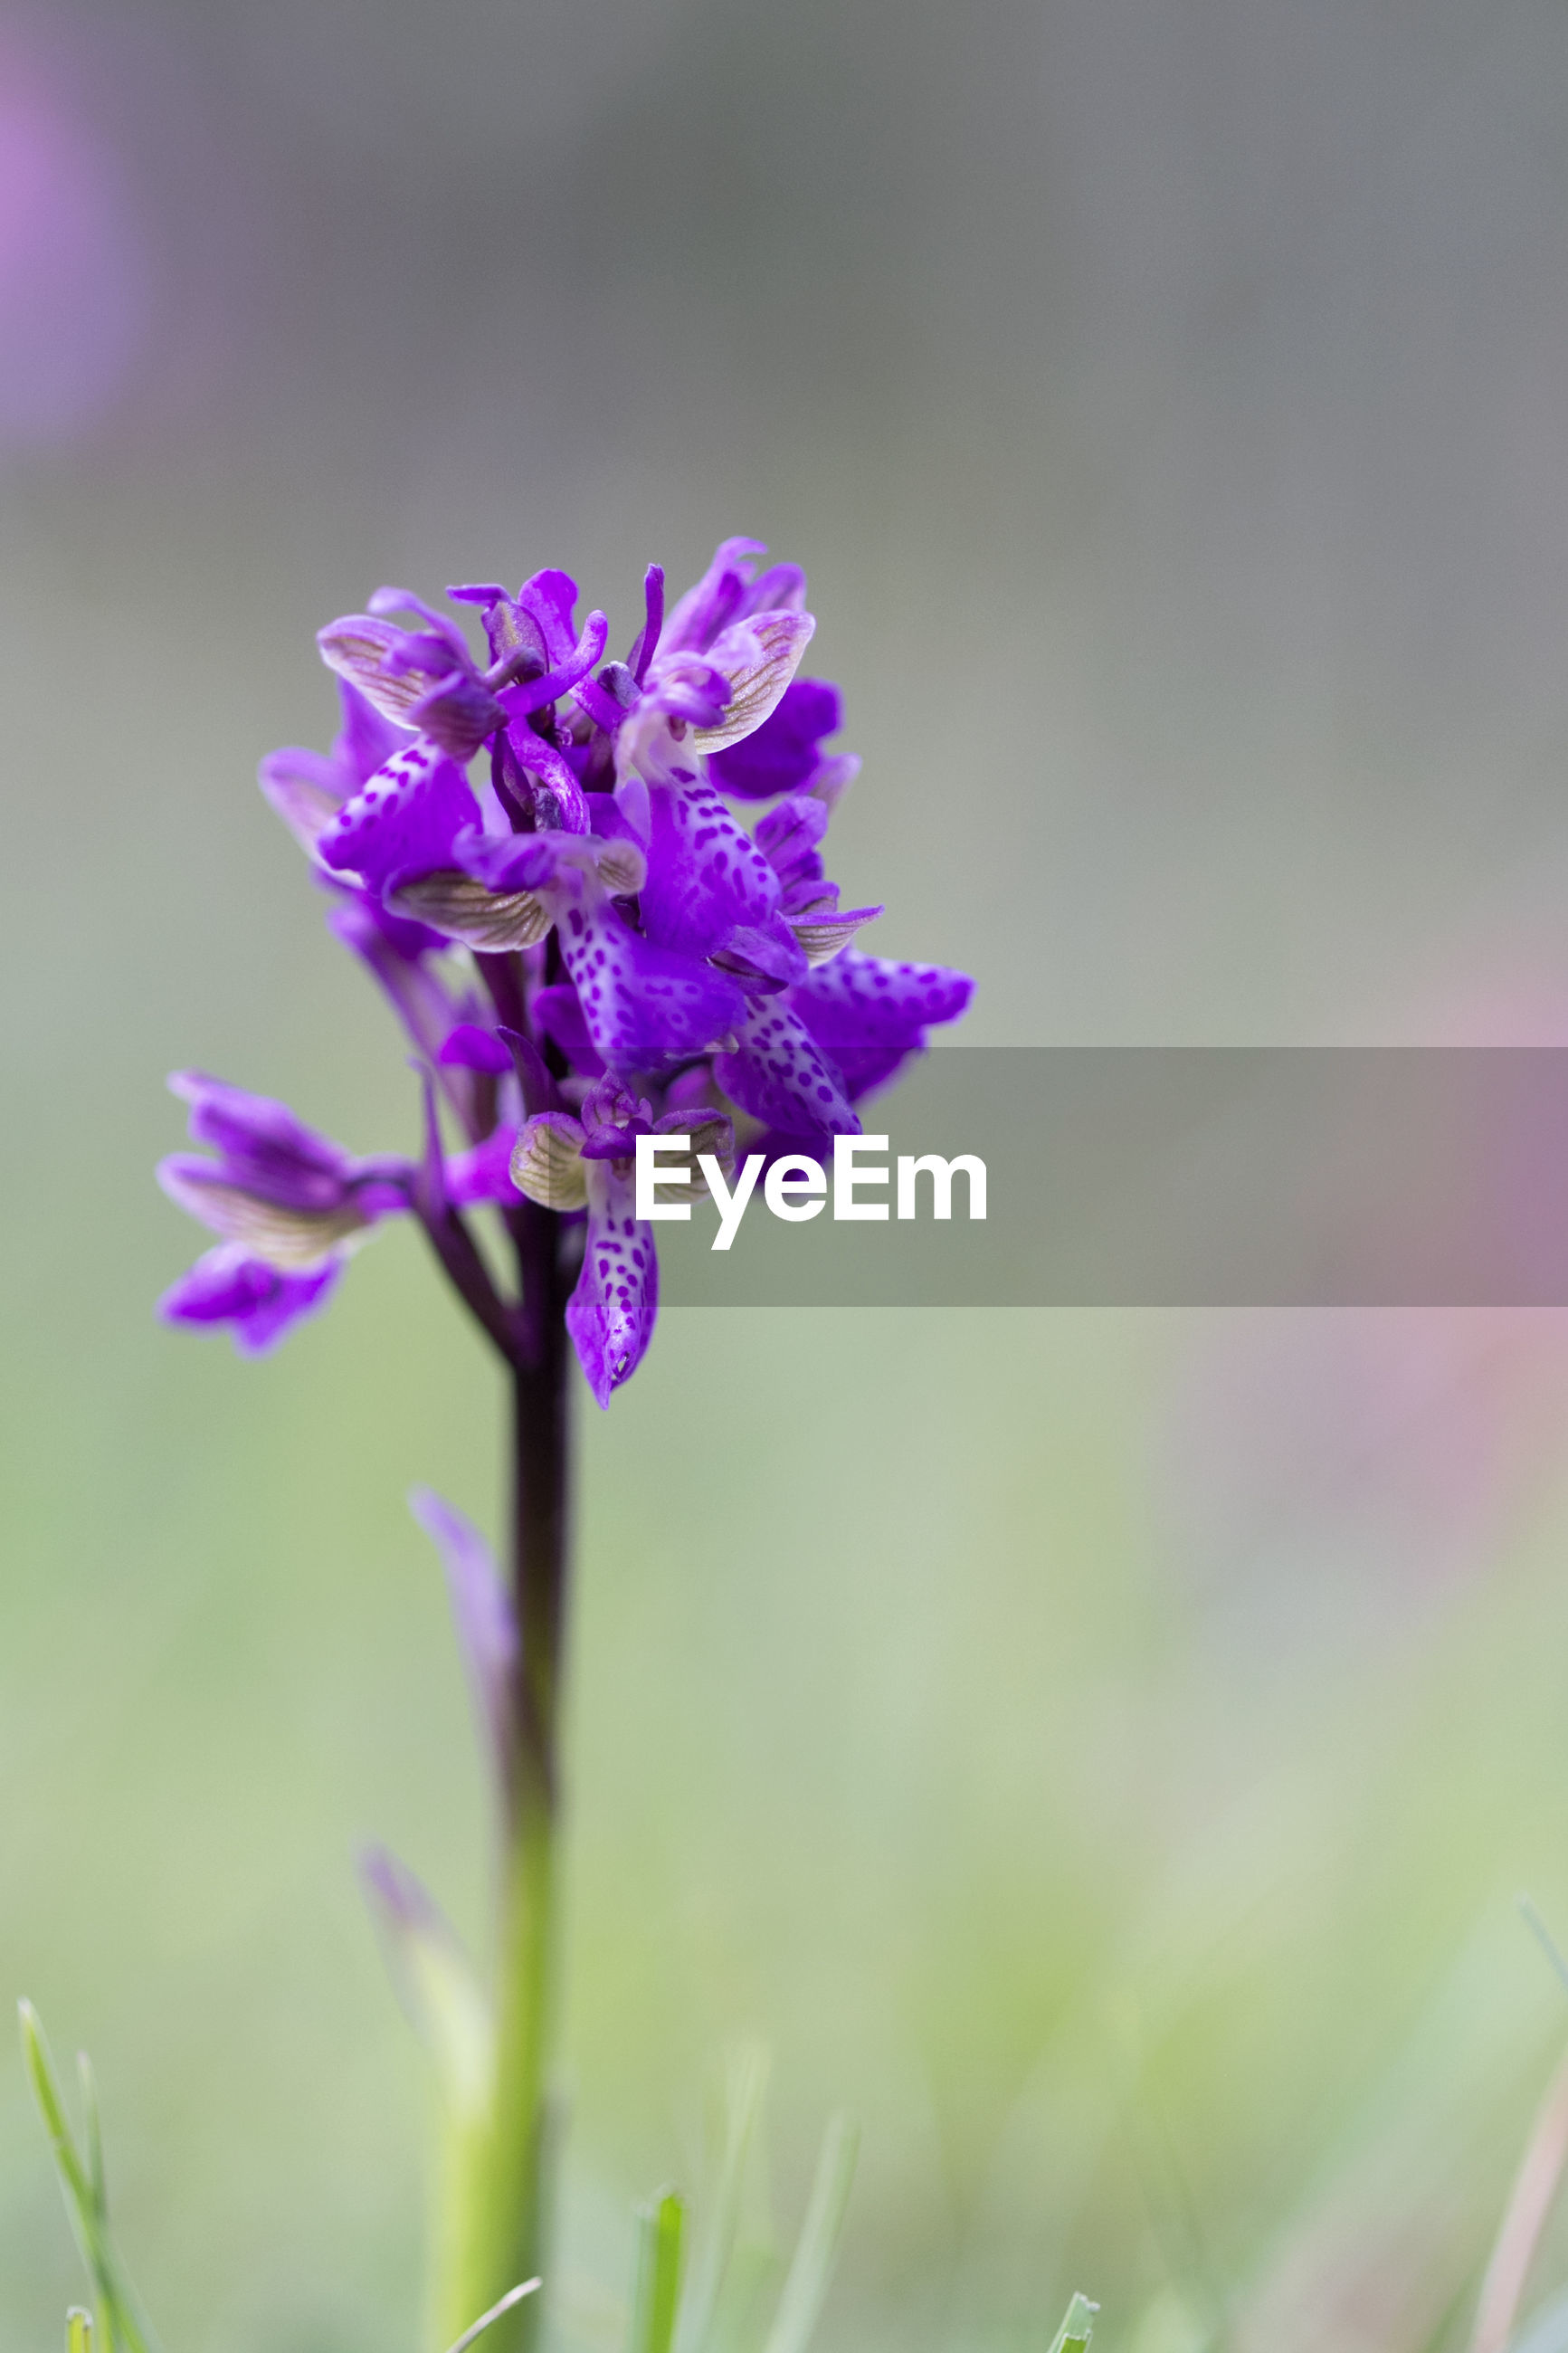 CLOSE-UP OF PURPLE FLOWER BLOOMING